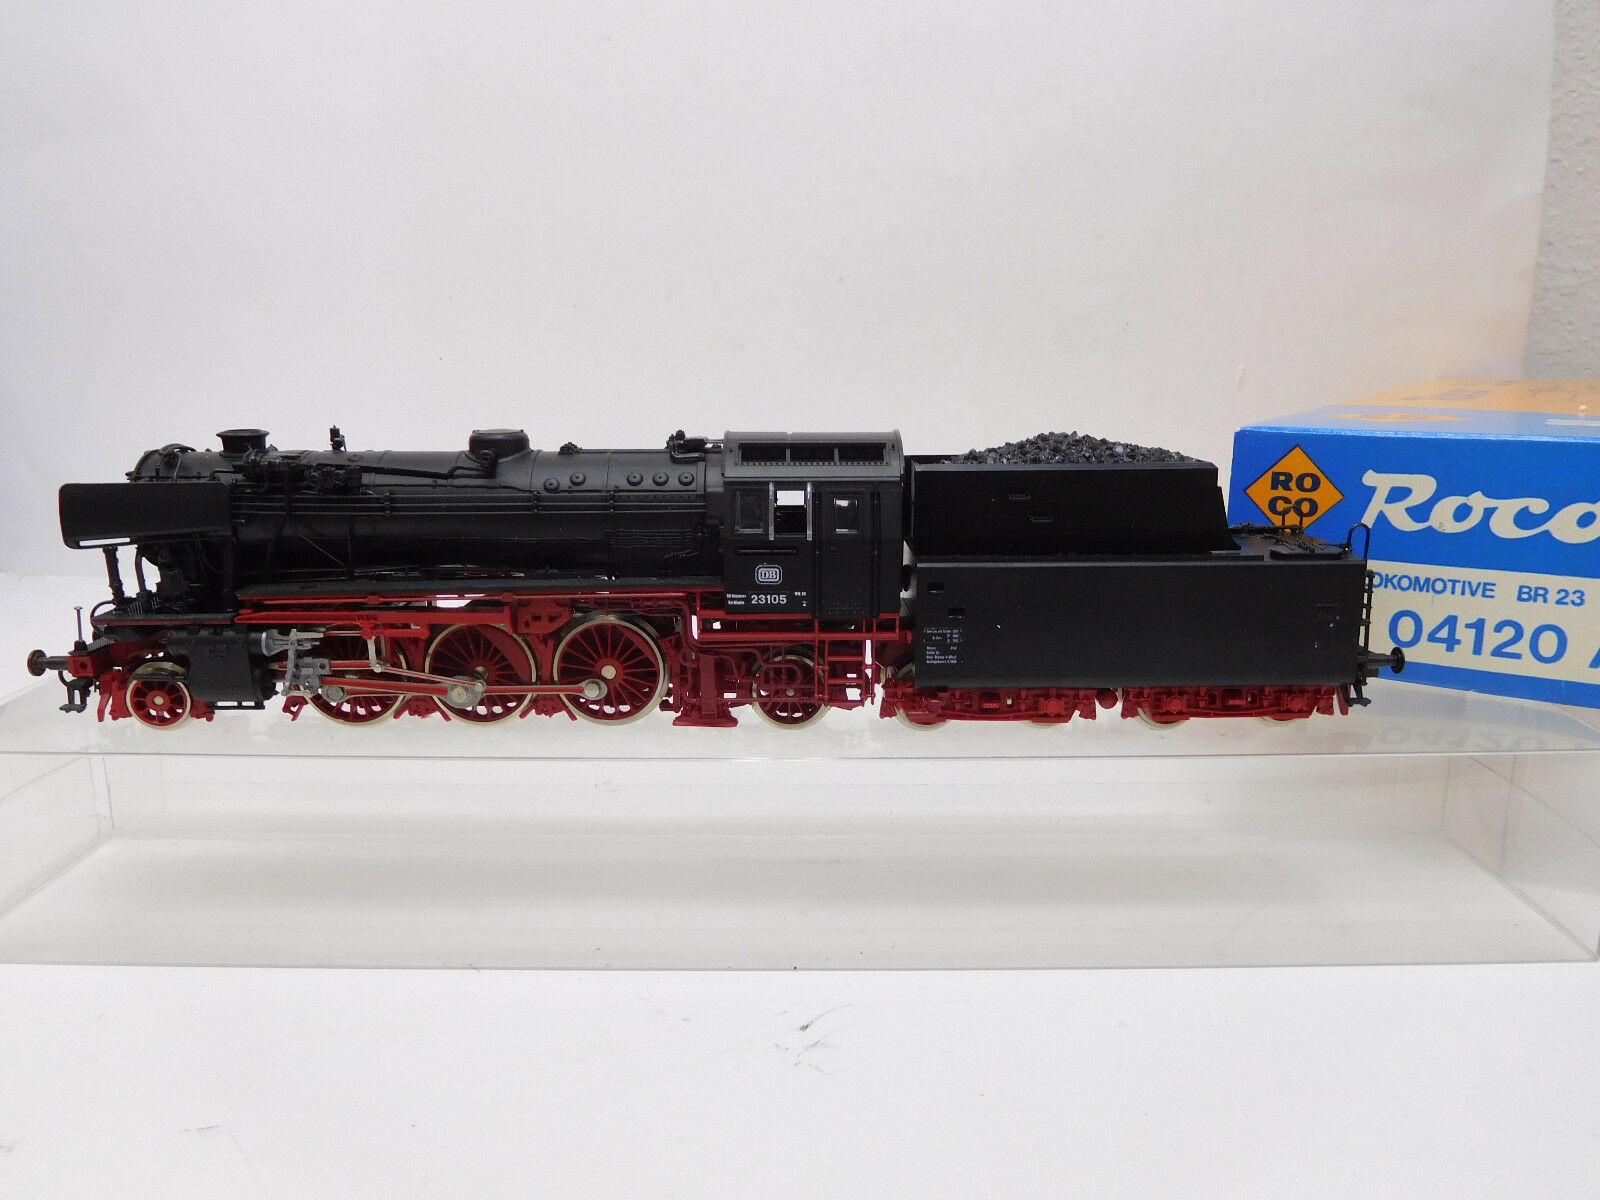 Mes-52530 Roco 04120 a h0 Steam Locomotive DB 23 105, function tested,